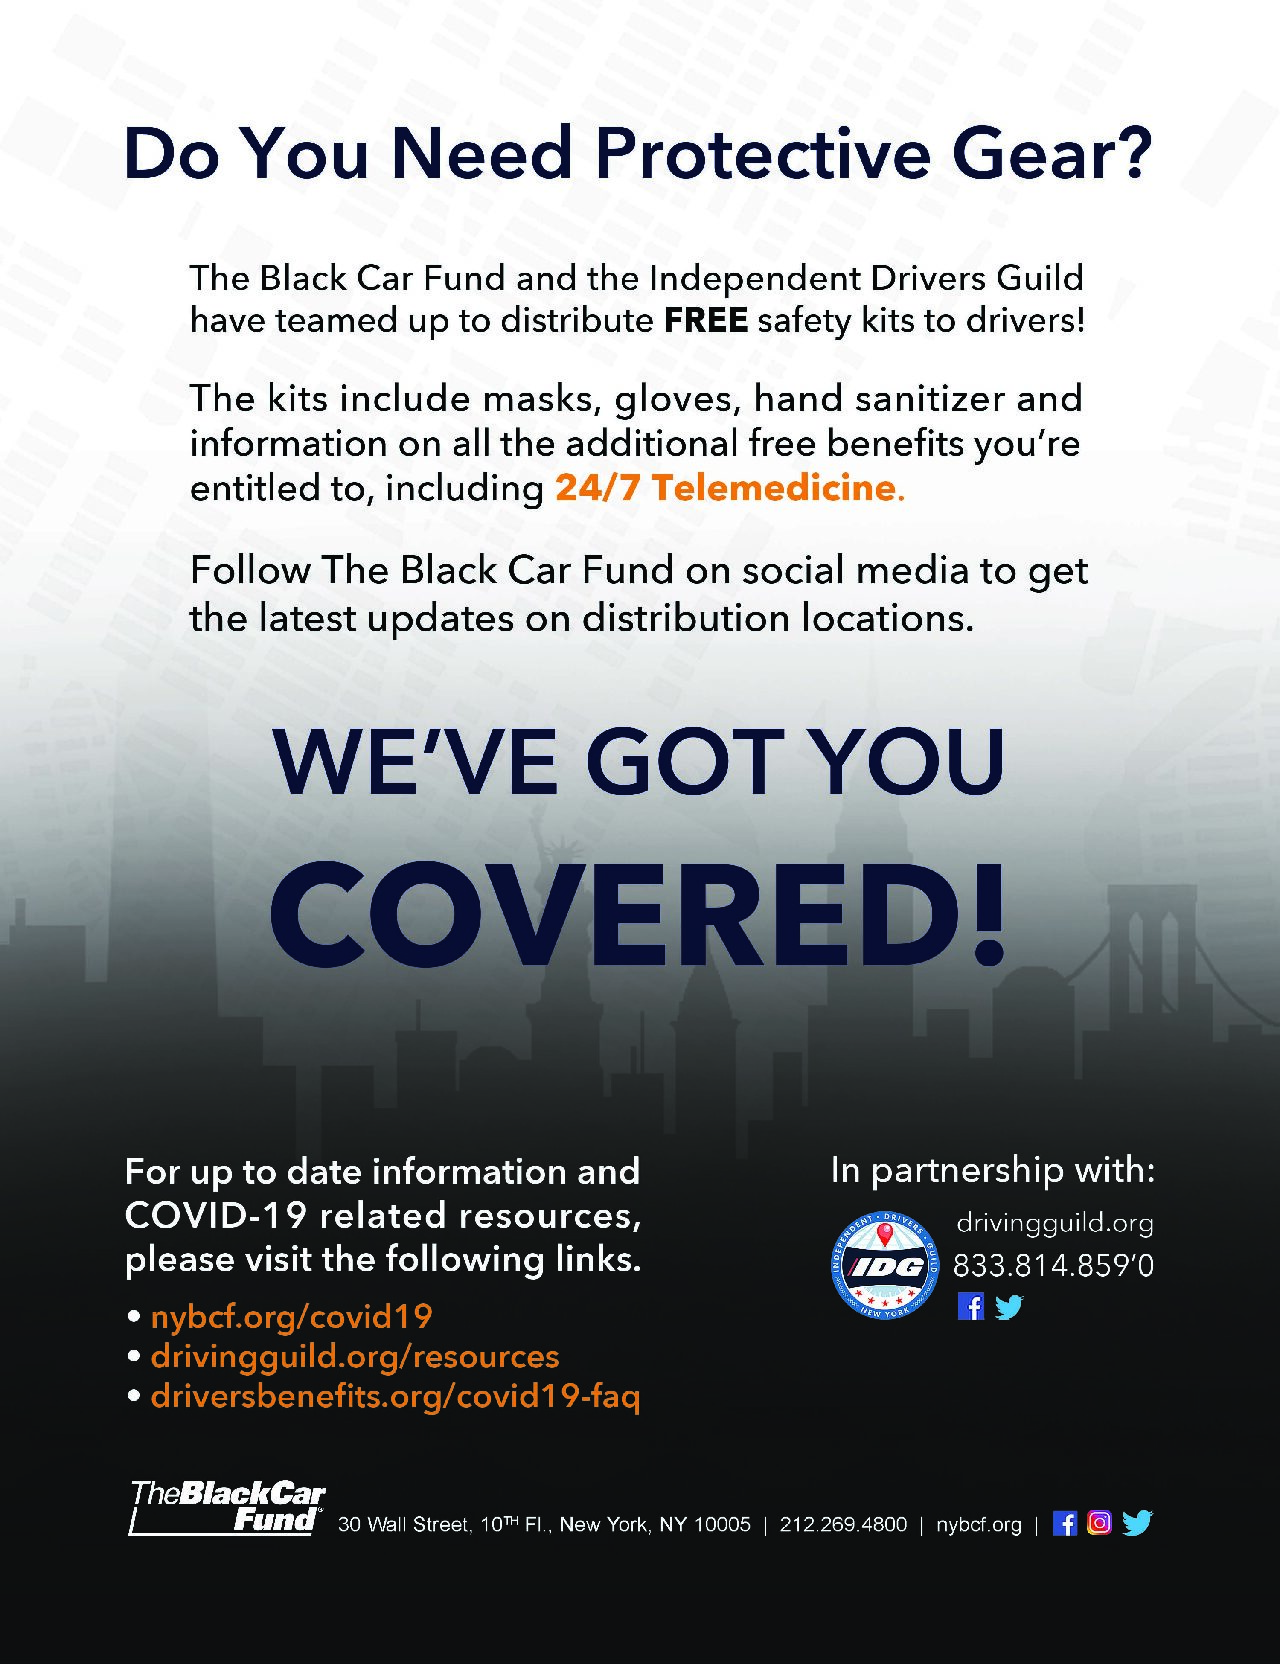 BLACK_CAR_FUND_PROTECTIVE_GEAR-pdf